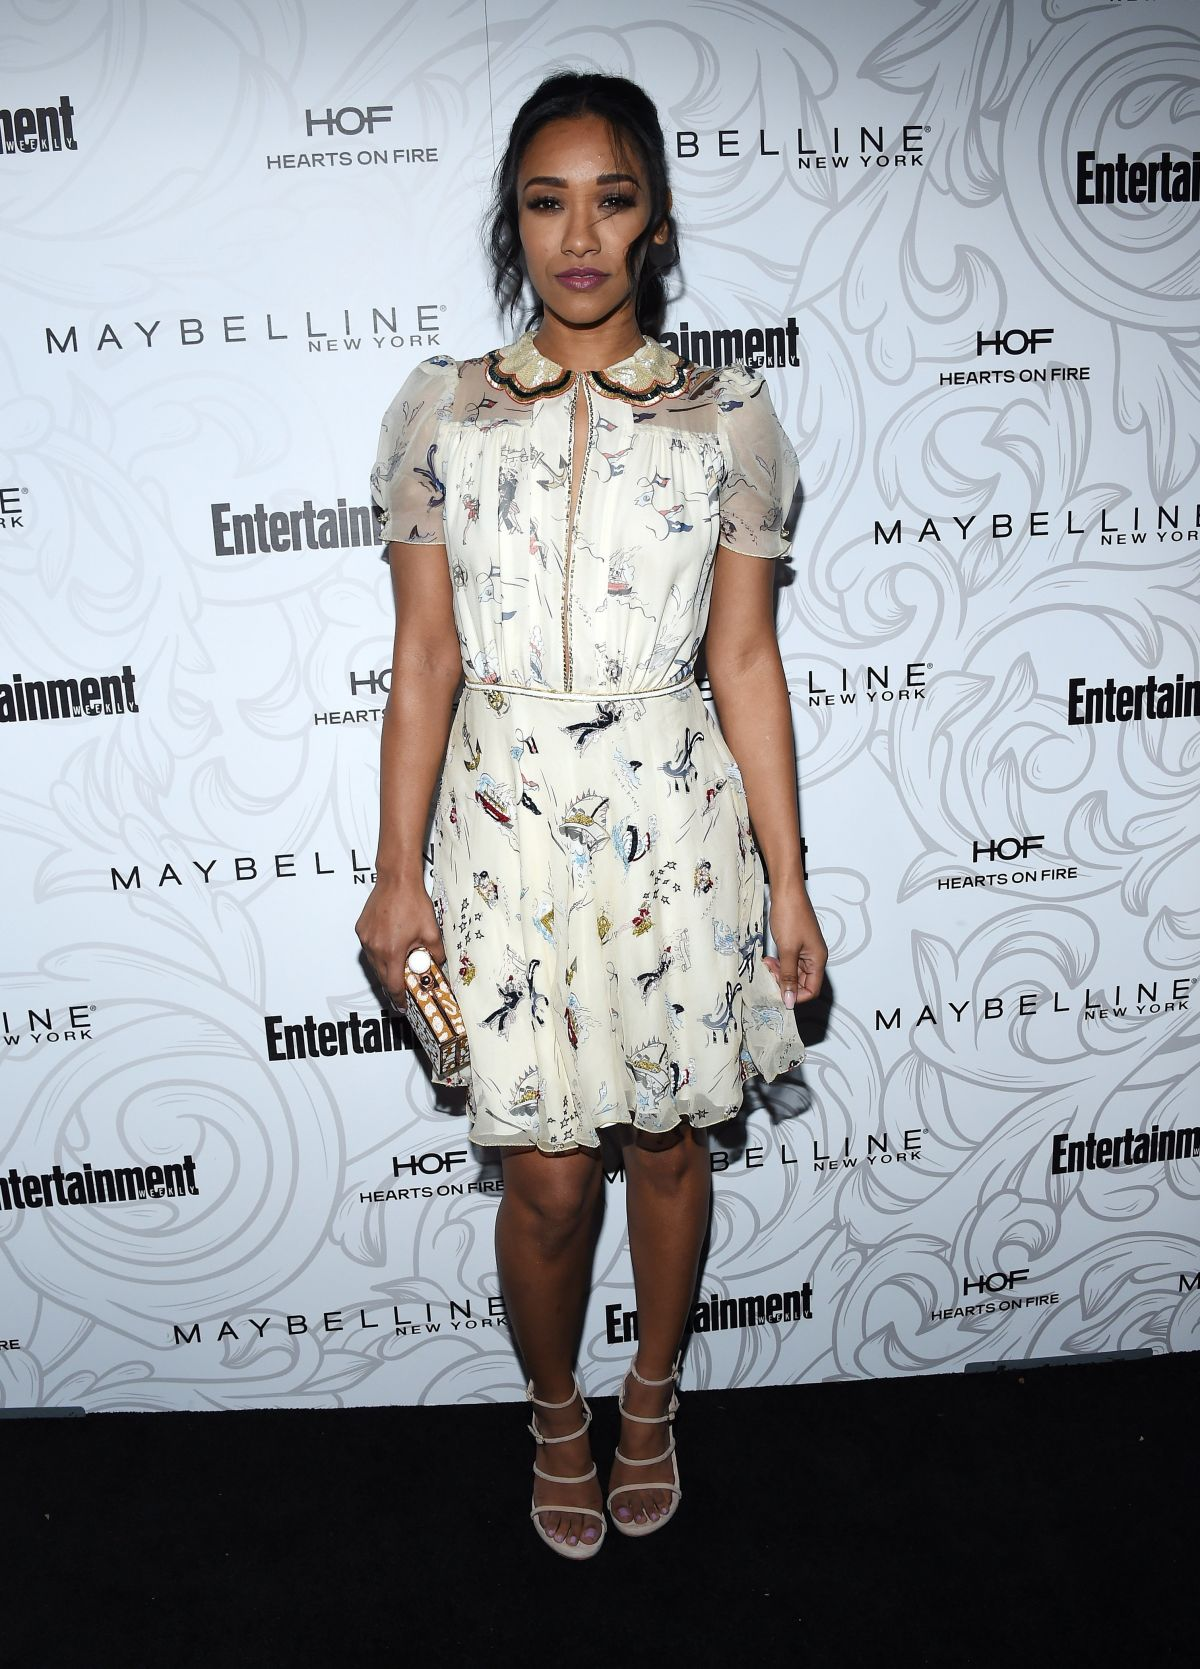 CANDICE PATTON at Entertainment Weekly Celebration of SAG Award Nominees in Los Angeles 01/28/2017